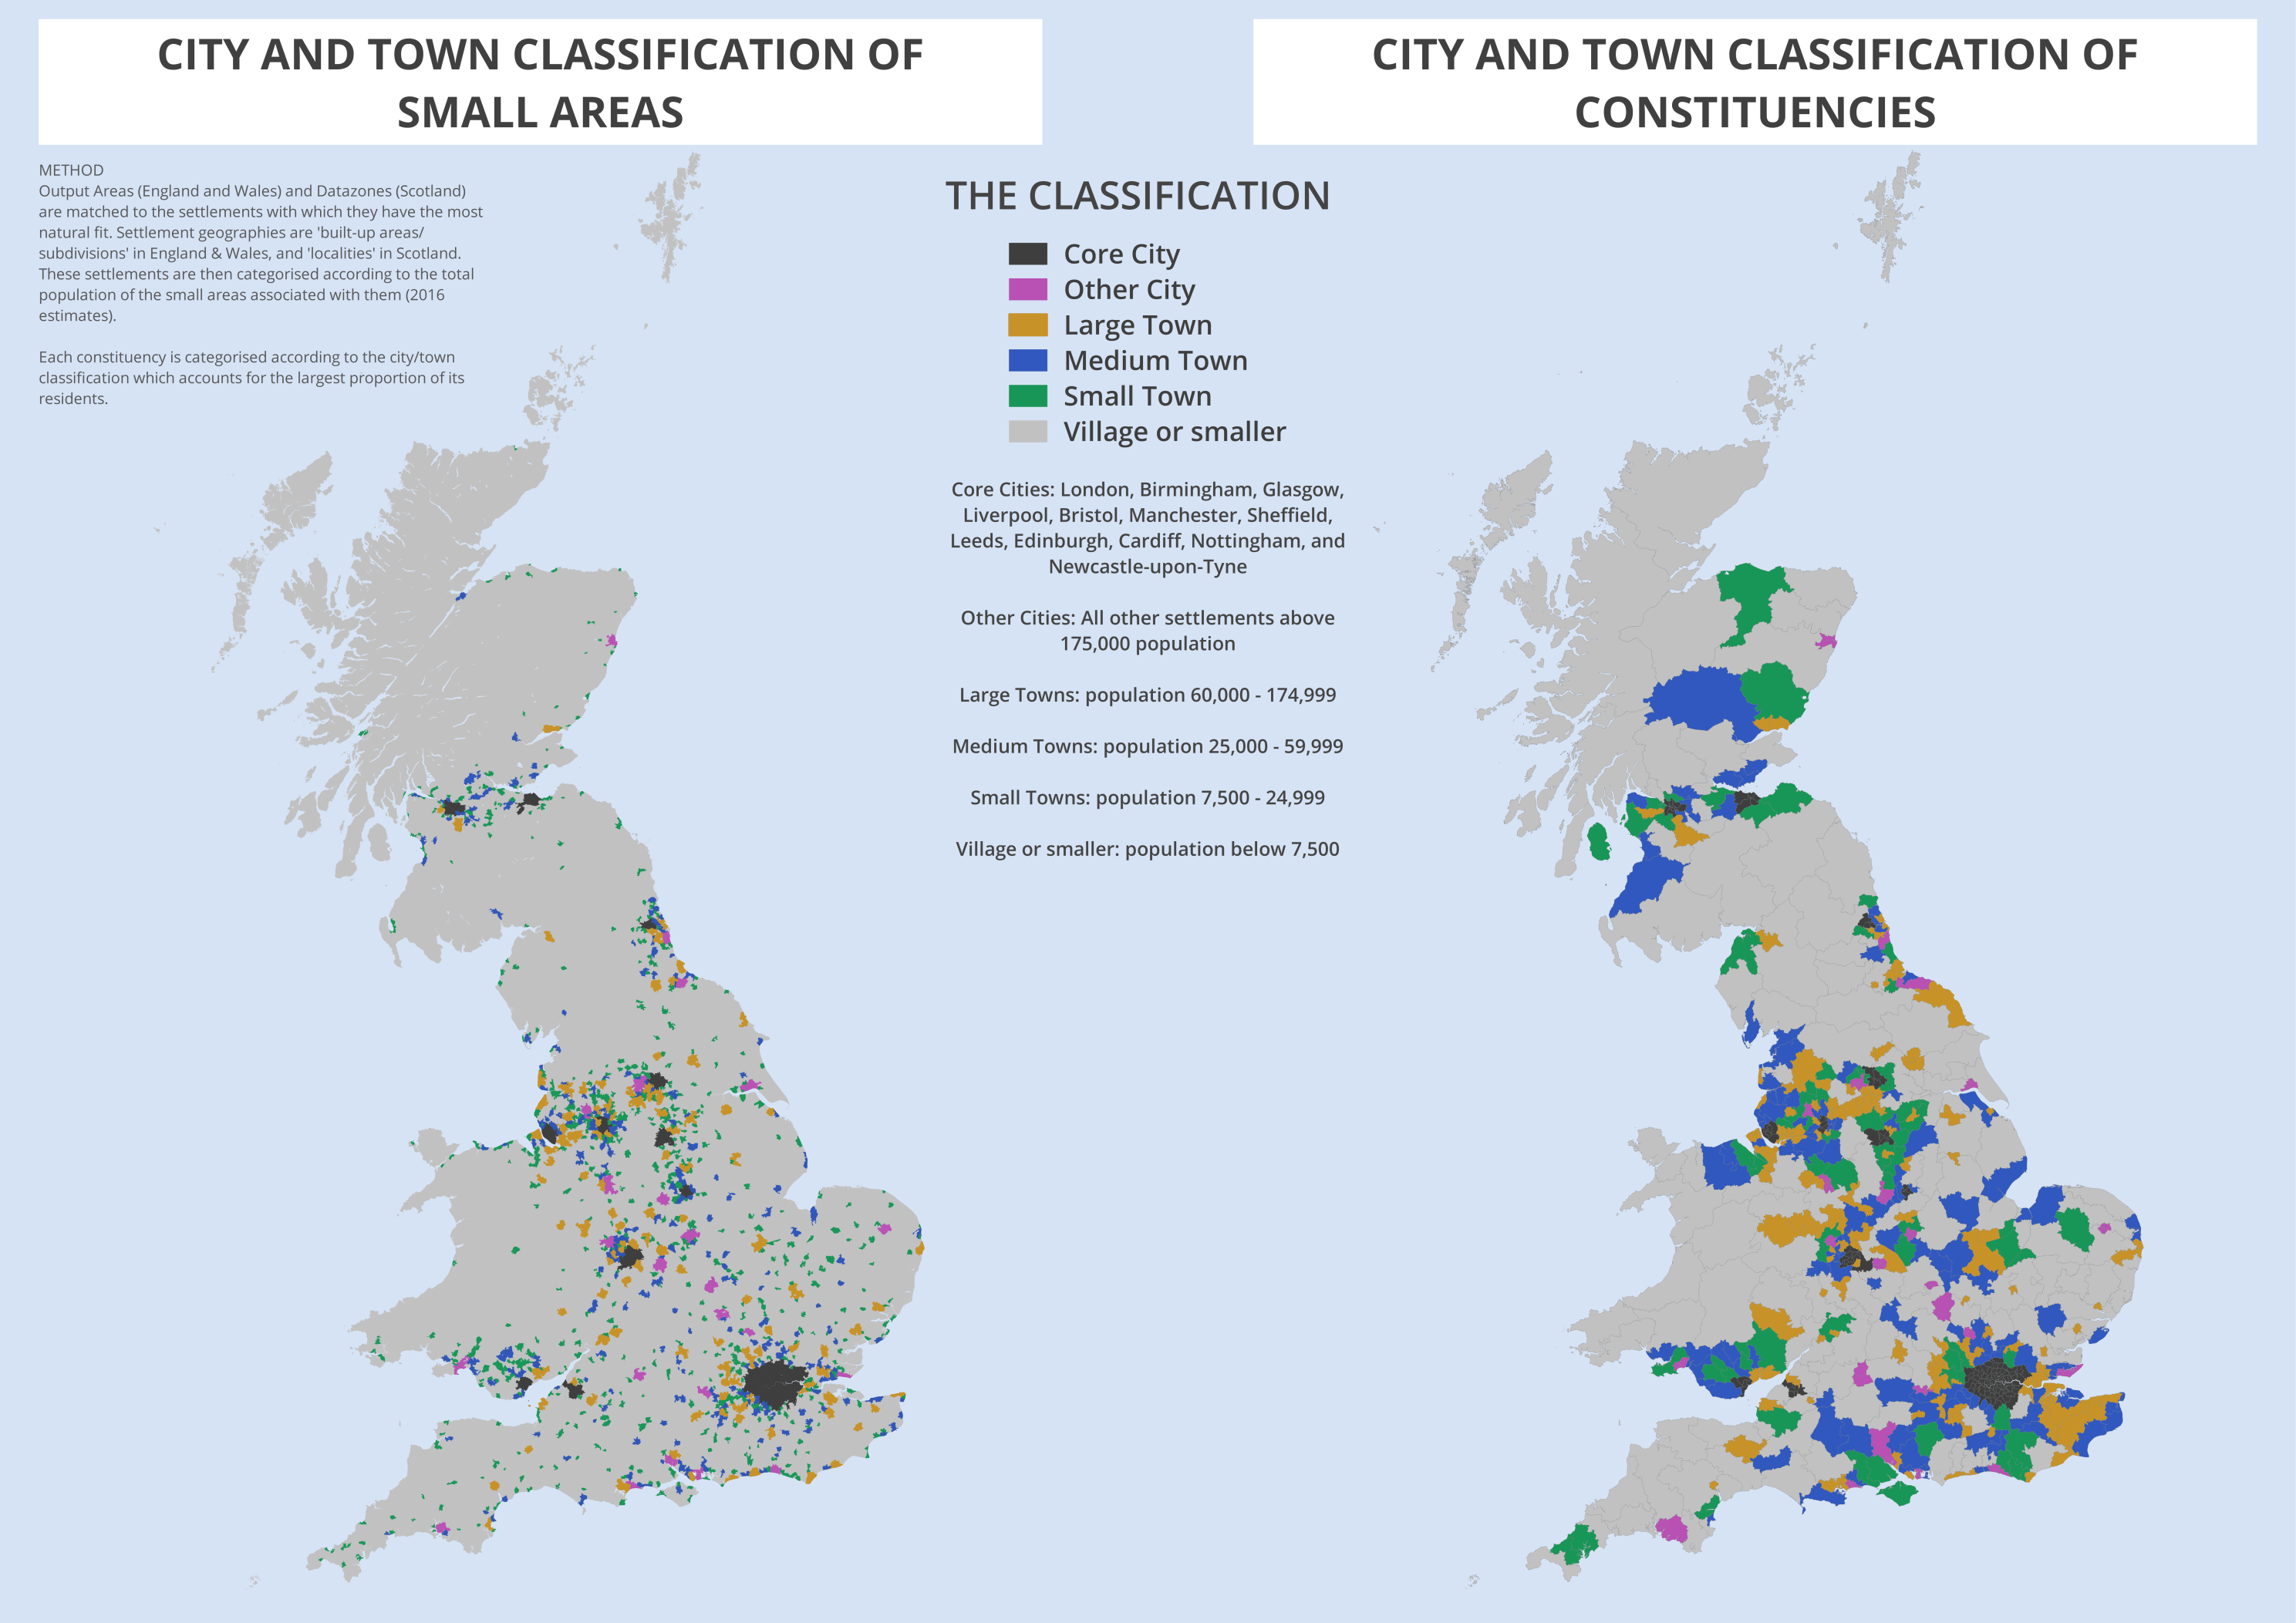 City Amp Town Classification Of Constituencies Amp Local